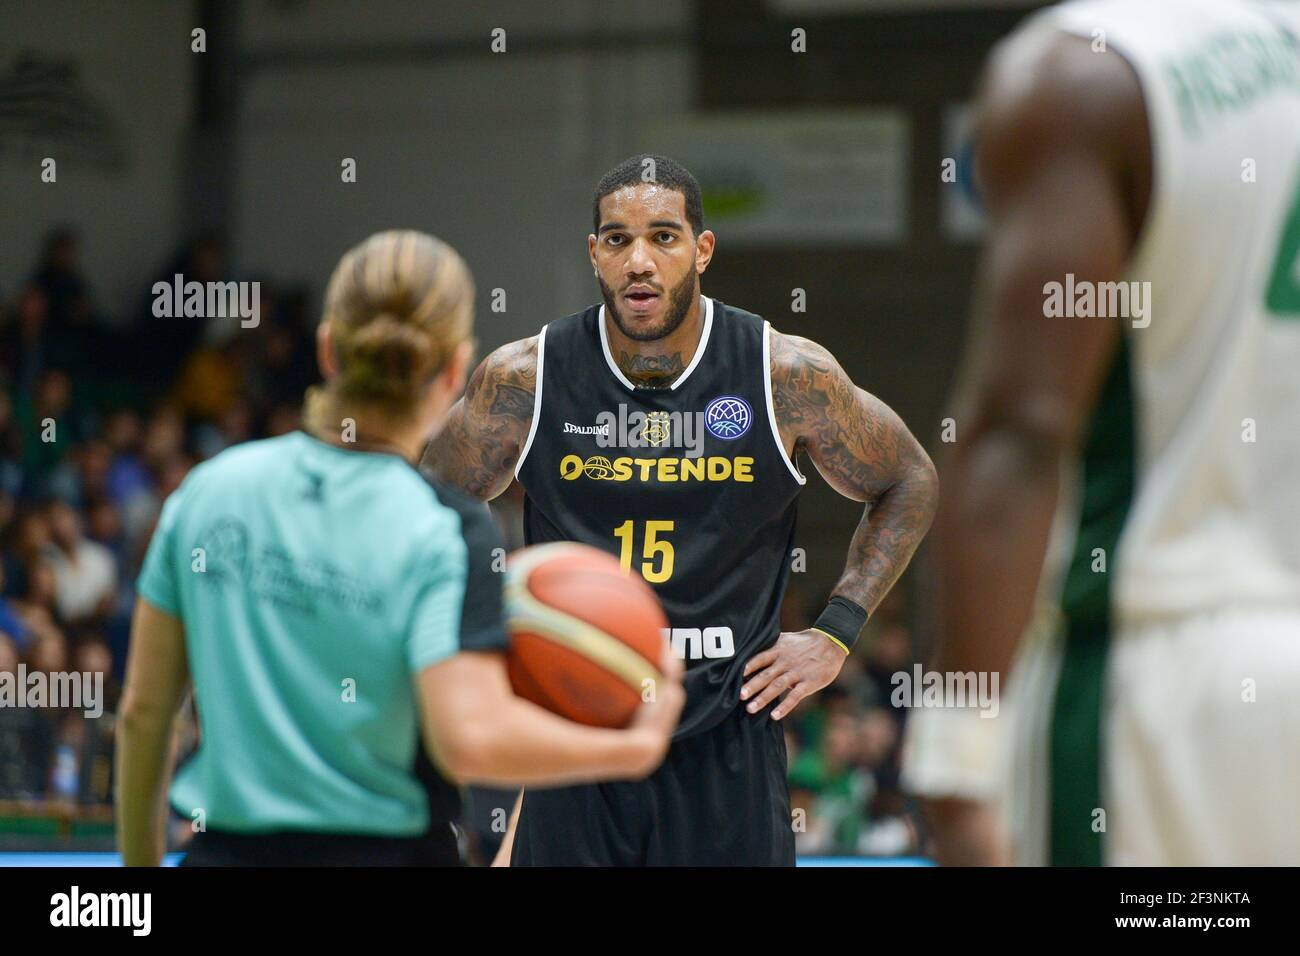 Mike Mayers of Oostende during the Basketball Champions League, Group D, match between Nanterre 92 and Oostende on November 1, 2017 at Palais des Sports in Nanterre, France - Photo I-HARIS / DPPI Stock Photo